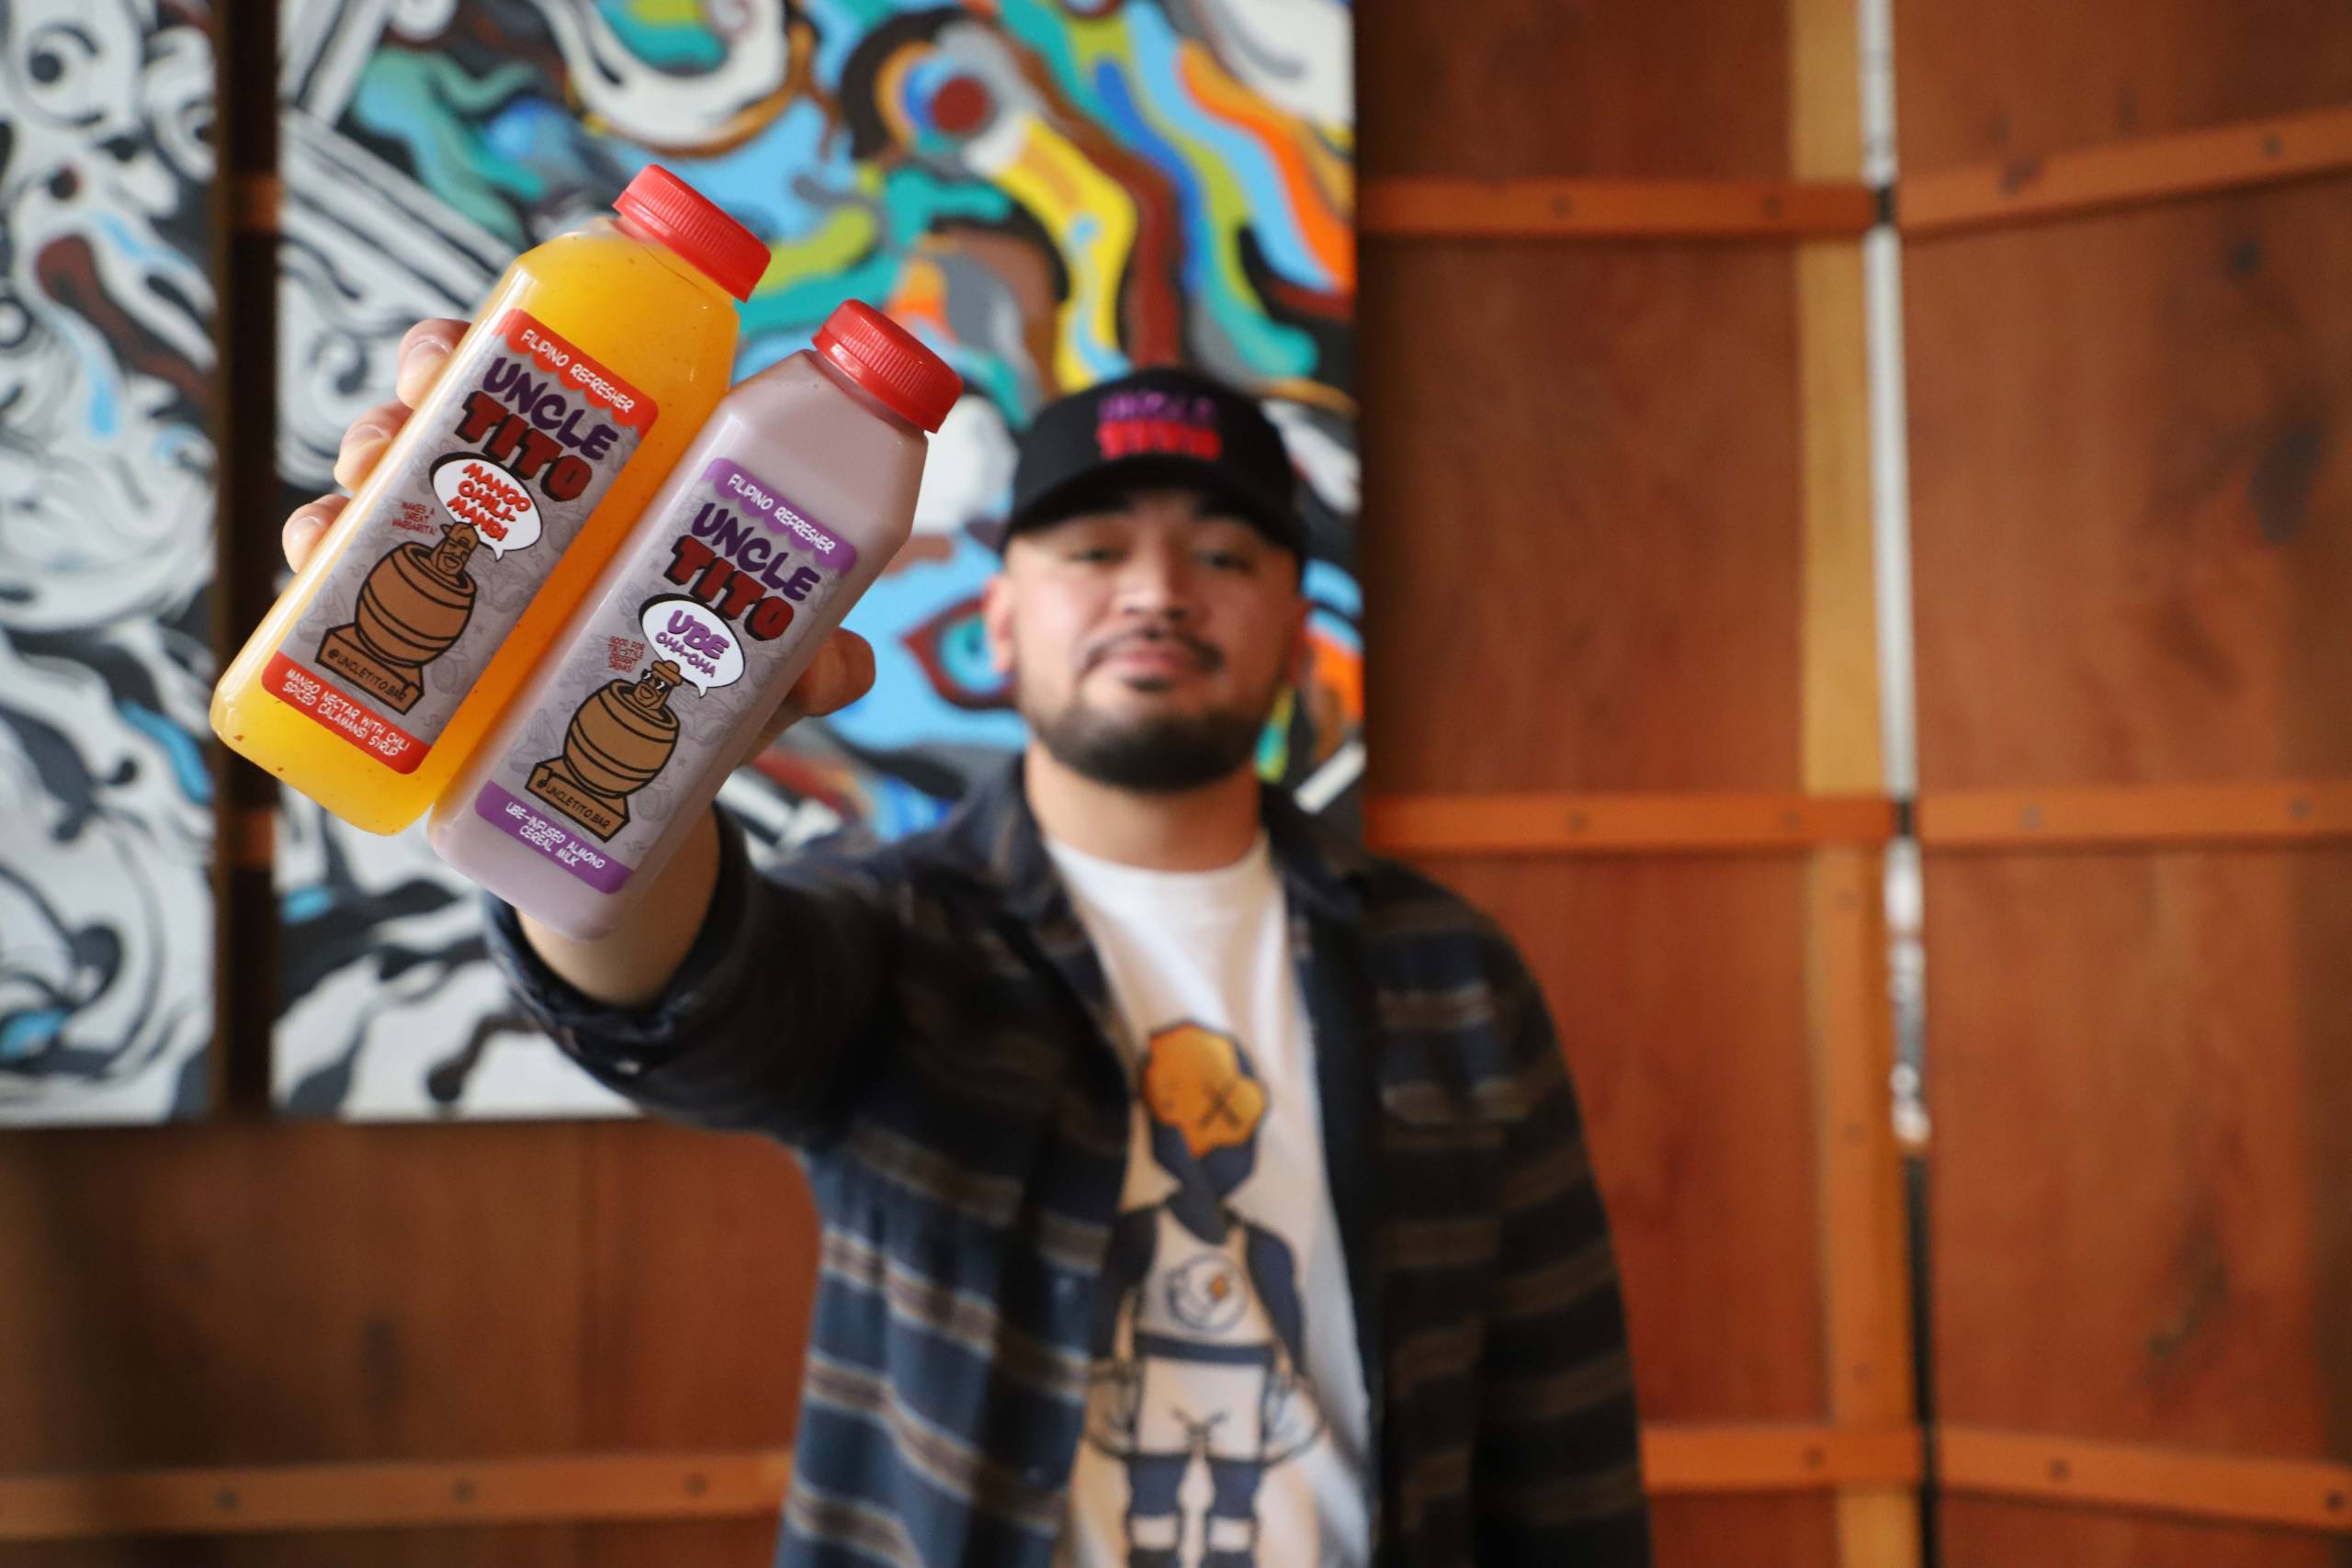 Joseph Alcasabas holds two of Uncle Tito's housemade beverages in his outstretched arm.